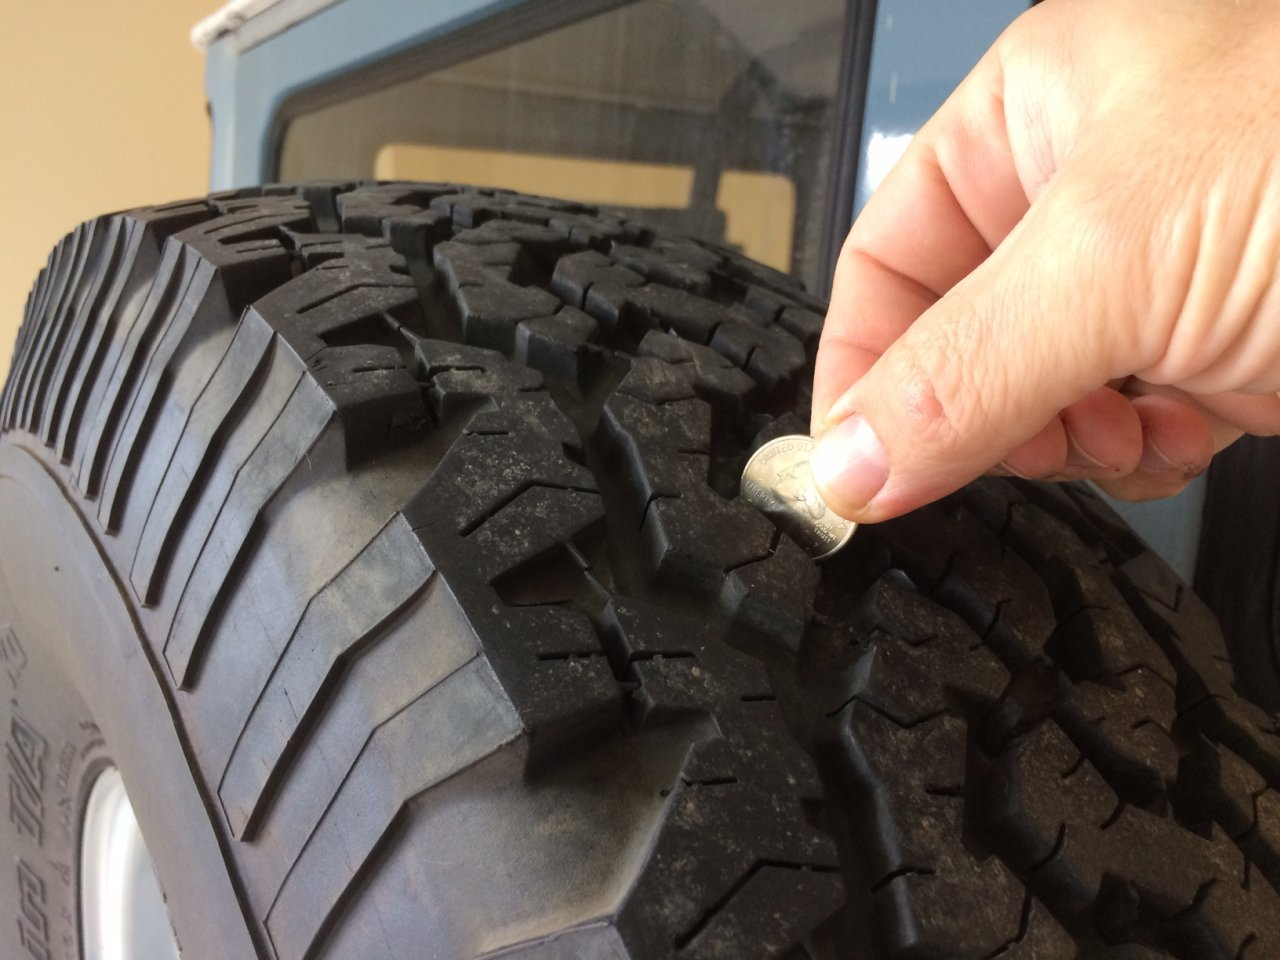 For Sale - BFG 33x9.5x15 All-Terrain tires for sale ...